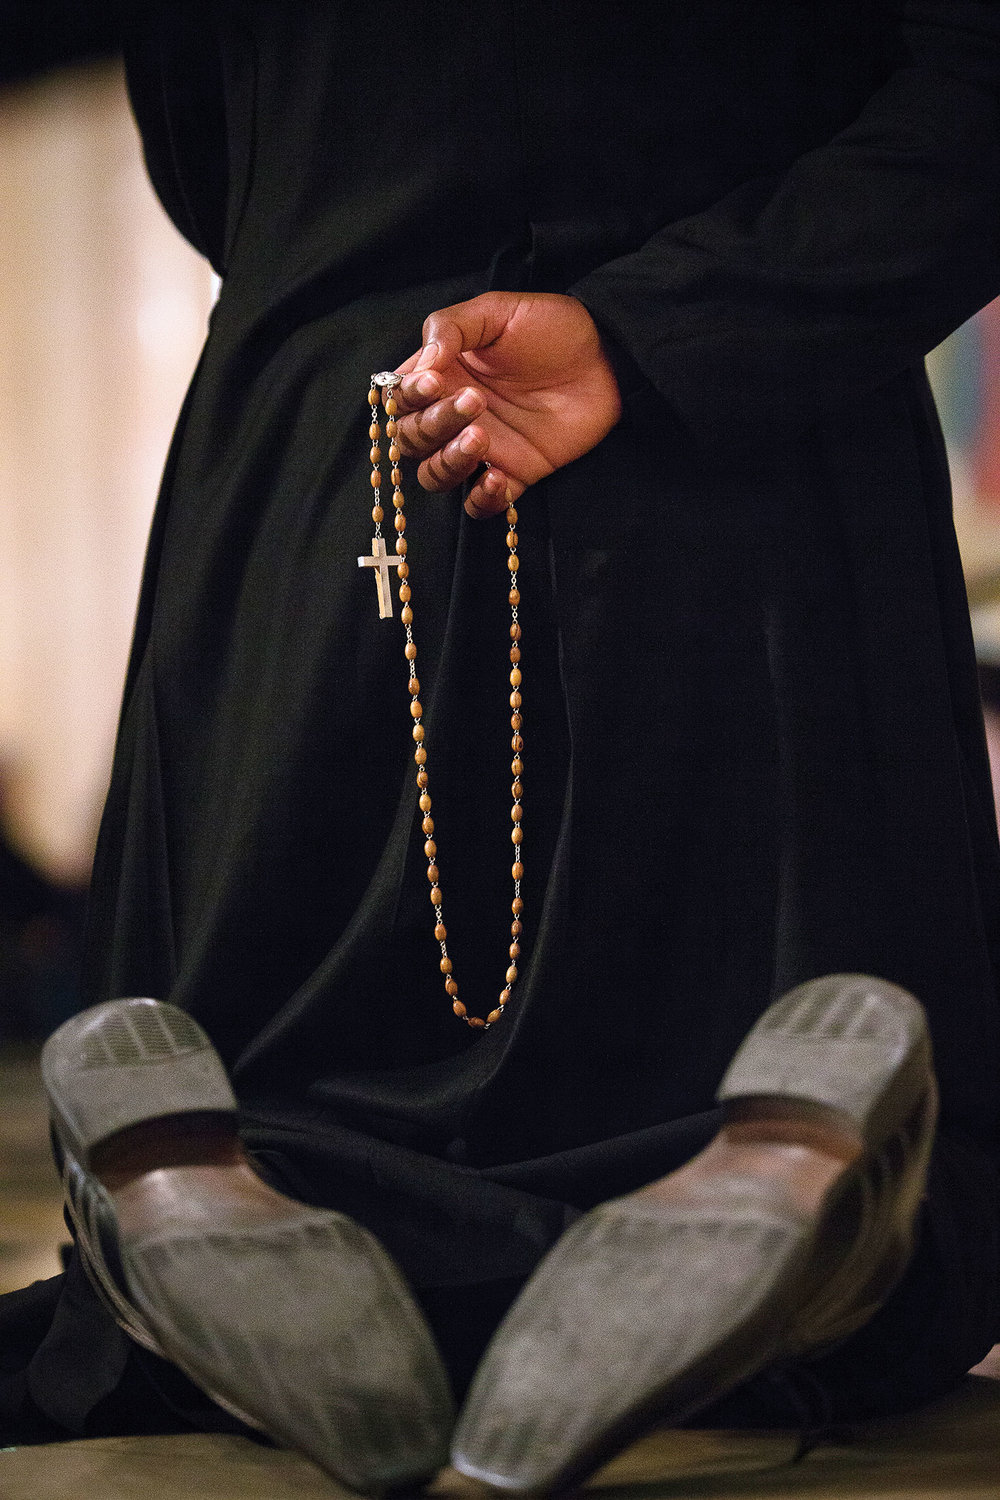 Seminarian Collins Ashu from St. Lucy's parish in the Bronx prays the Rosary.